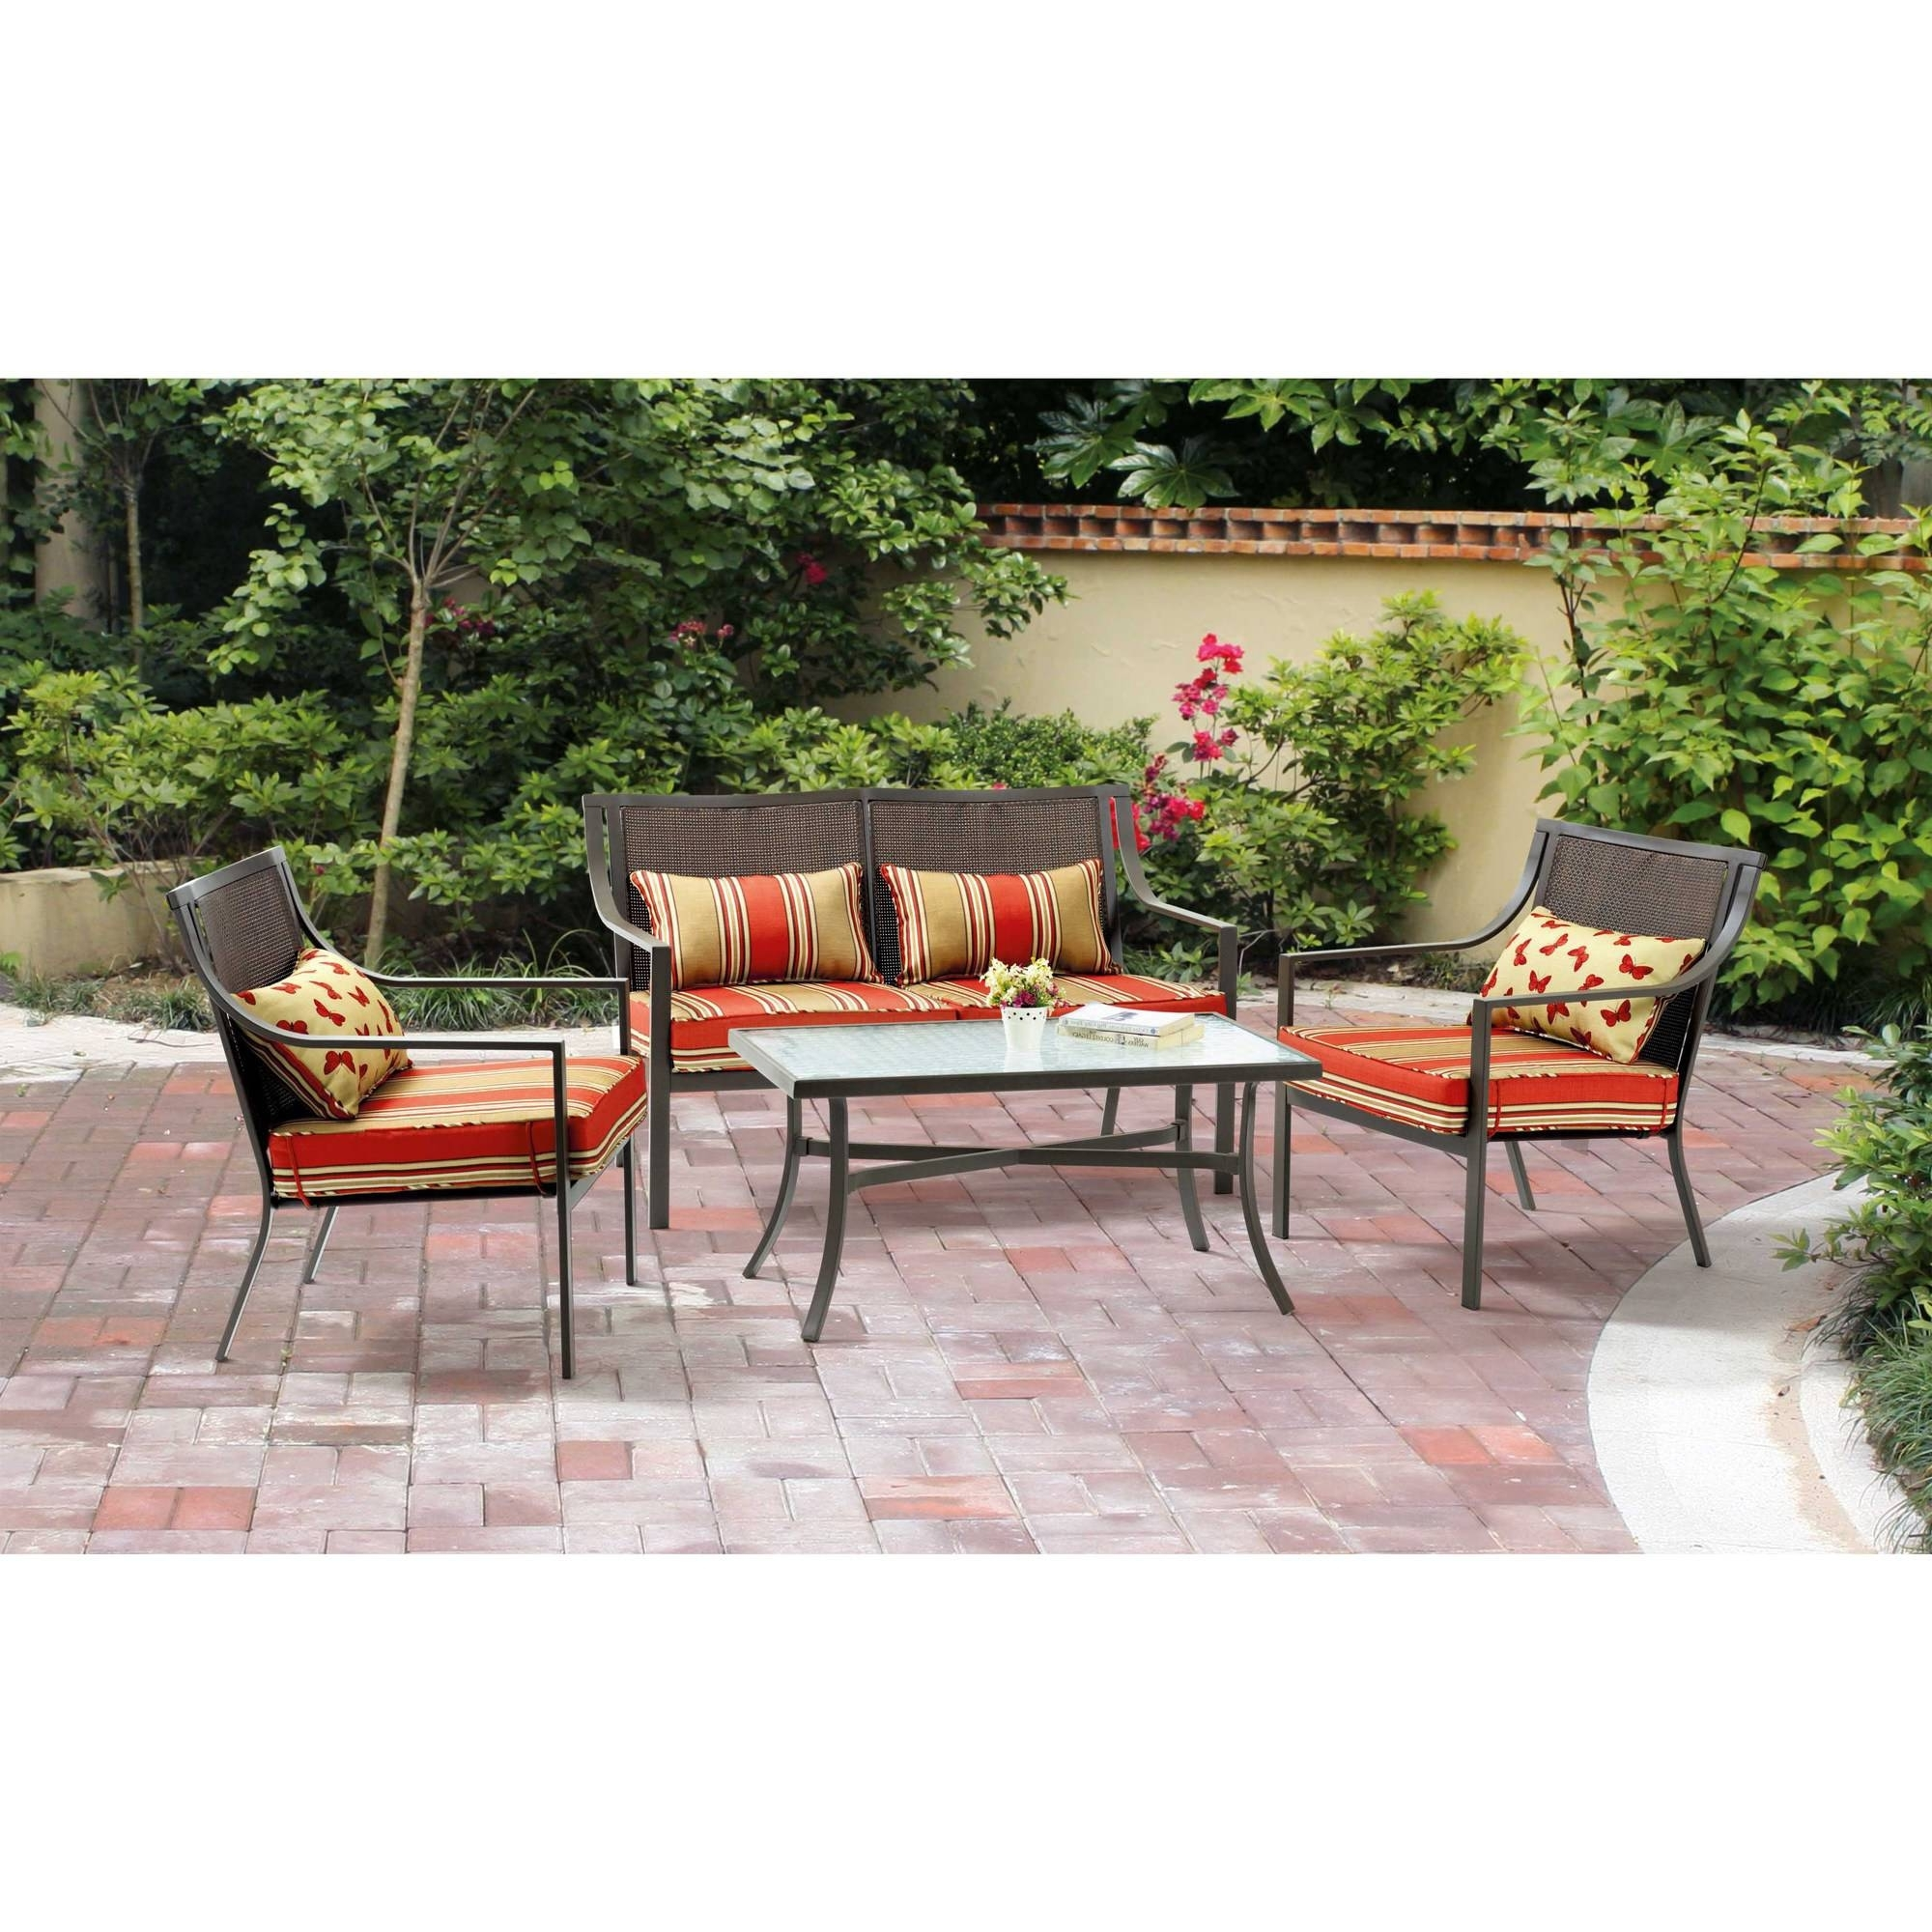 Patio : Covers Forctional Patio Furniture Outdoor Winter Curved Throughout Fashionable Kohl's Patio Conversation Sets (View 12 of 15)